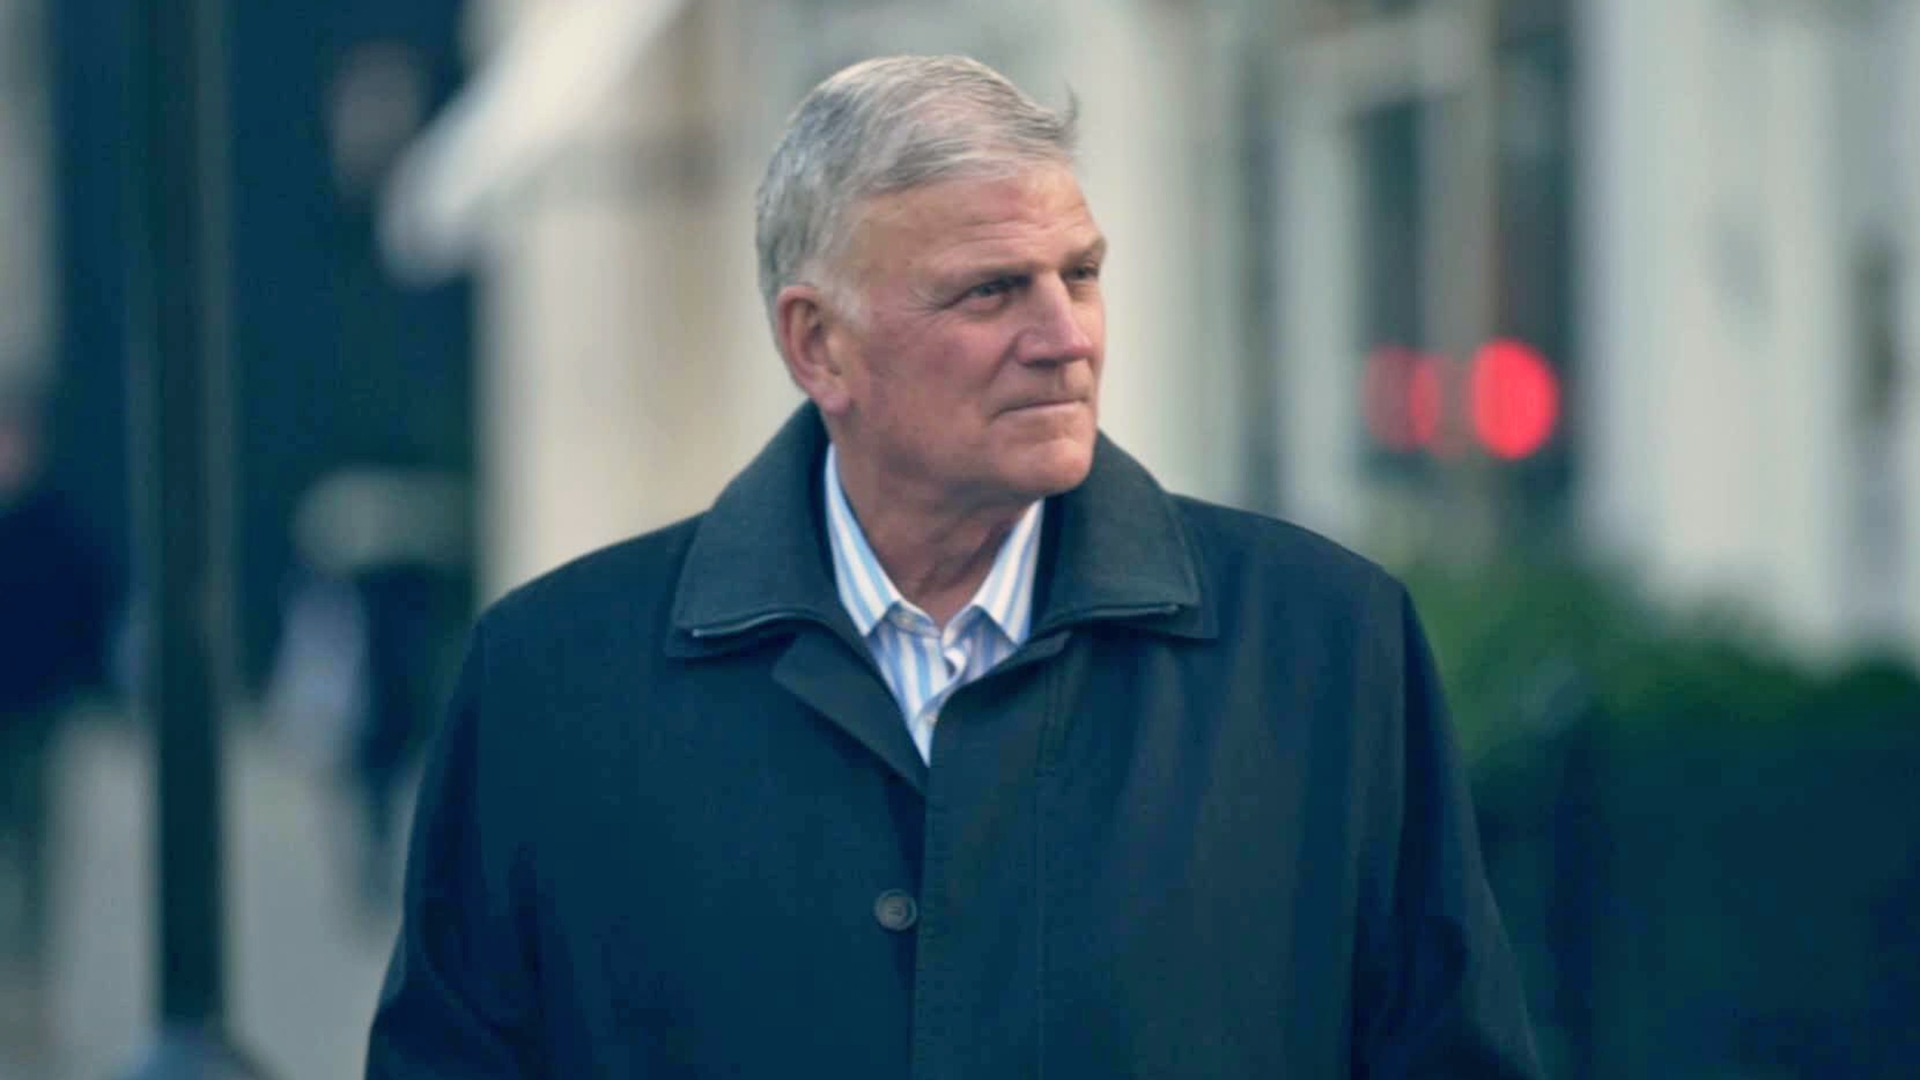 Franklin Graham Explains the Mission of Every Christian